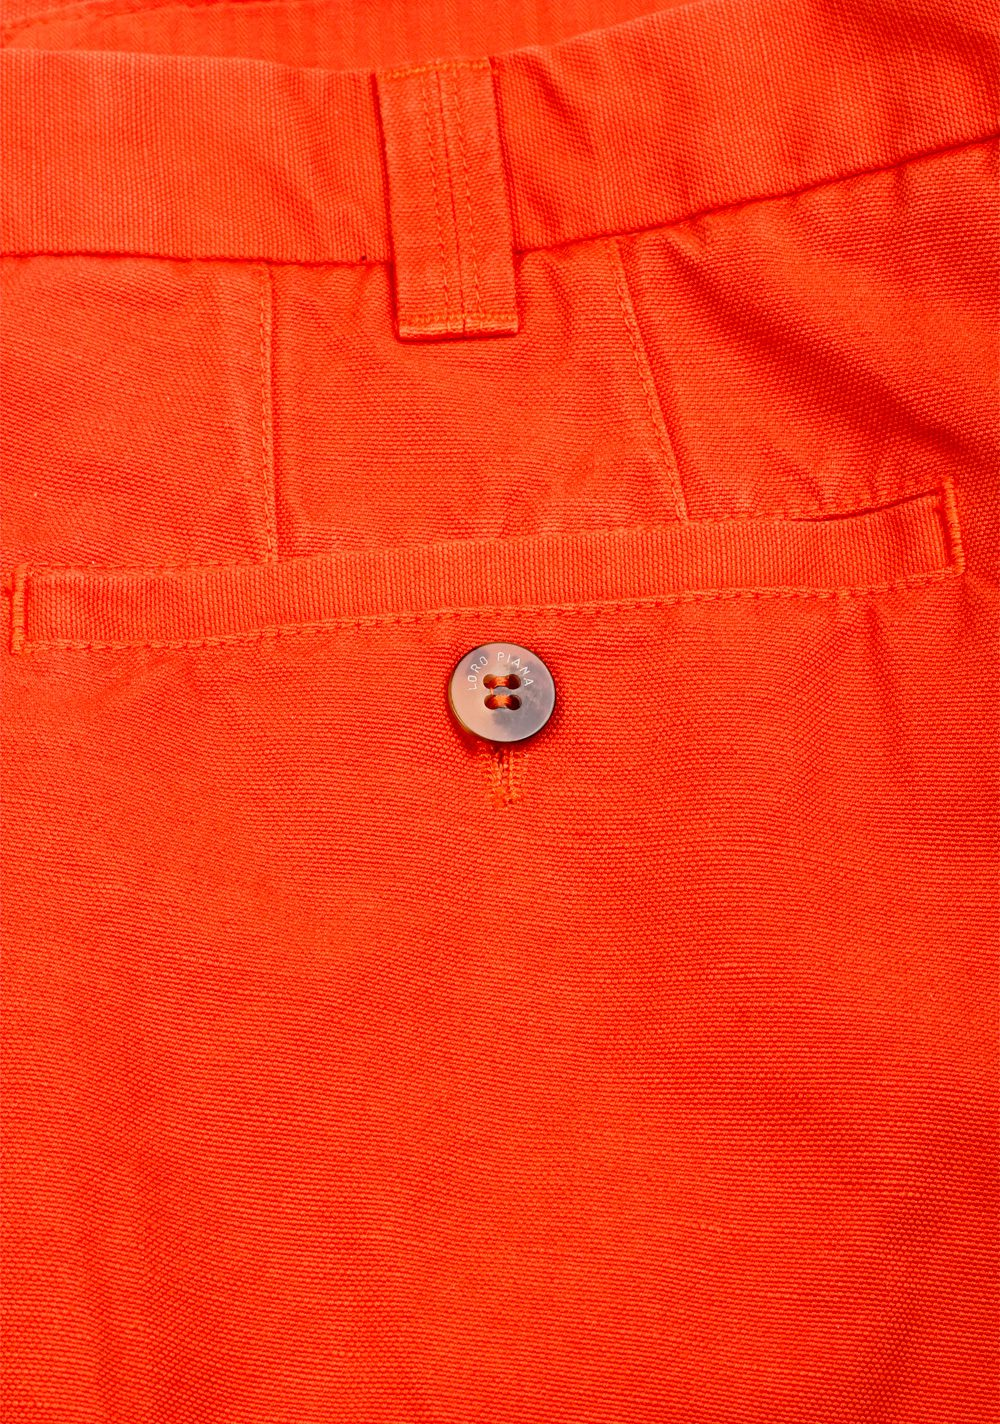 Loro Piana Orange Trousers Size 56 / 40 U.S. | Costume Limité